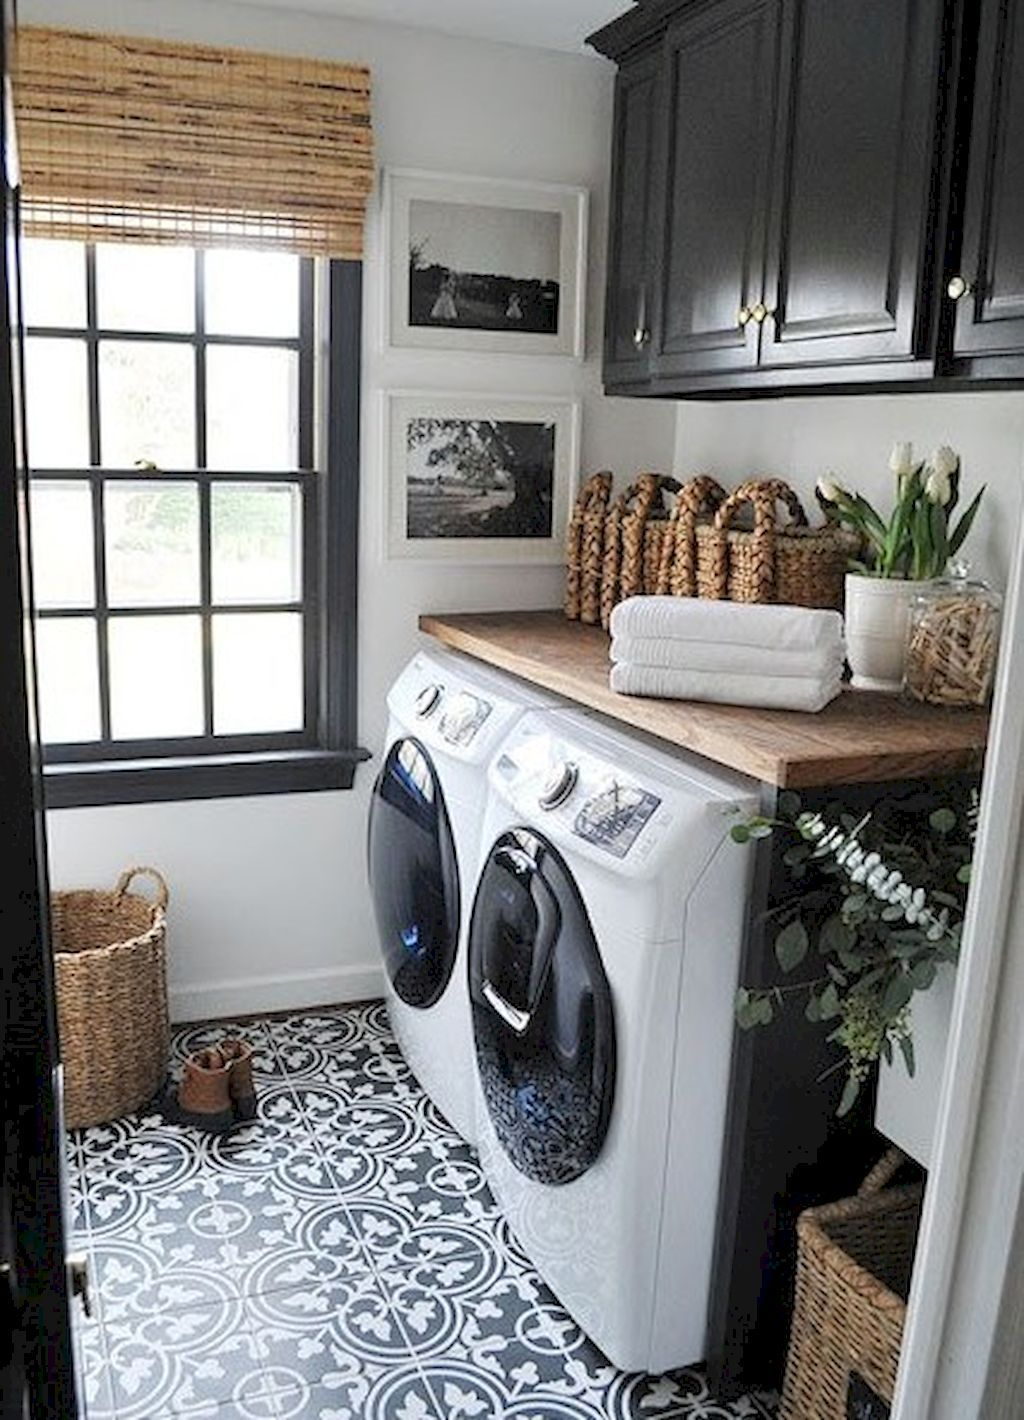 Modern Farmhouse Laundry Room Ideas 61 Insidecorate Com Laundry In Bathroom Laundry Mud Room Laundry Room Decor